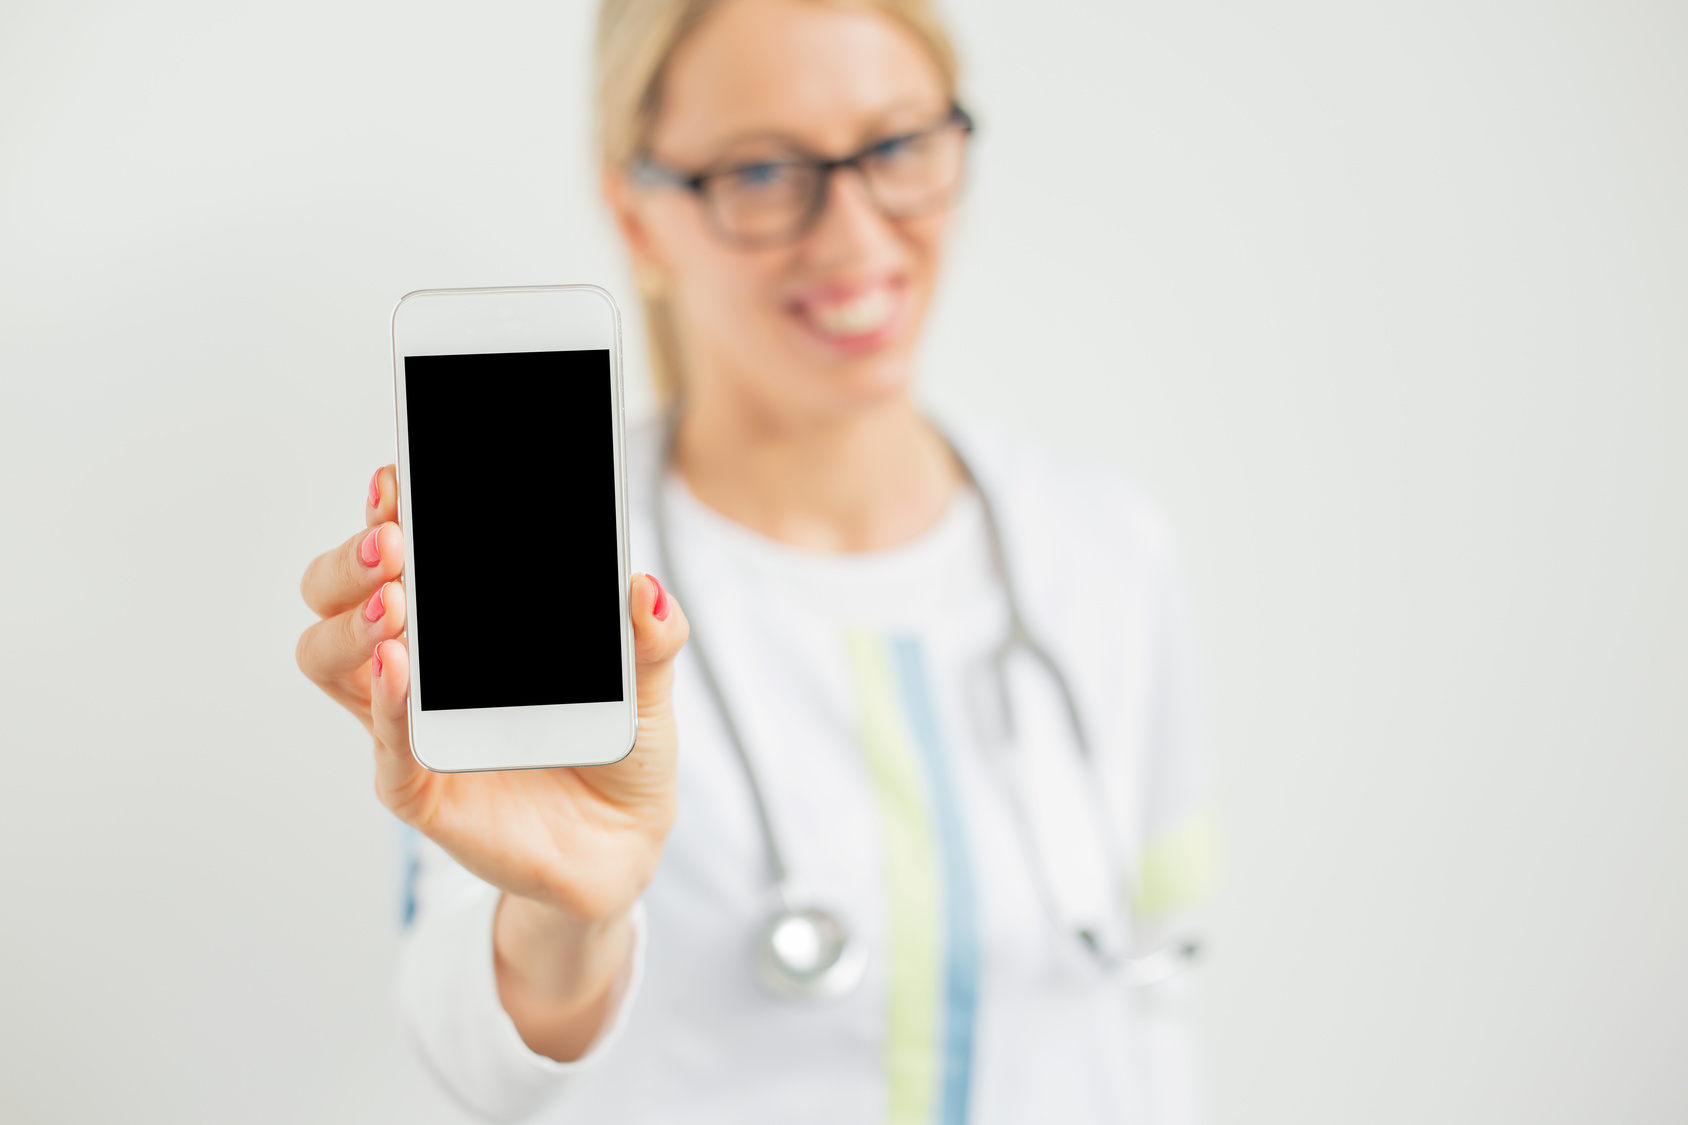 Why Should Doctors Use A Smartphone?